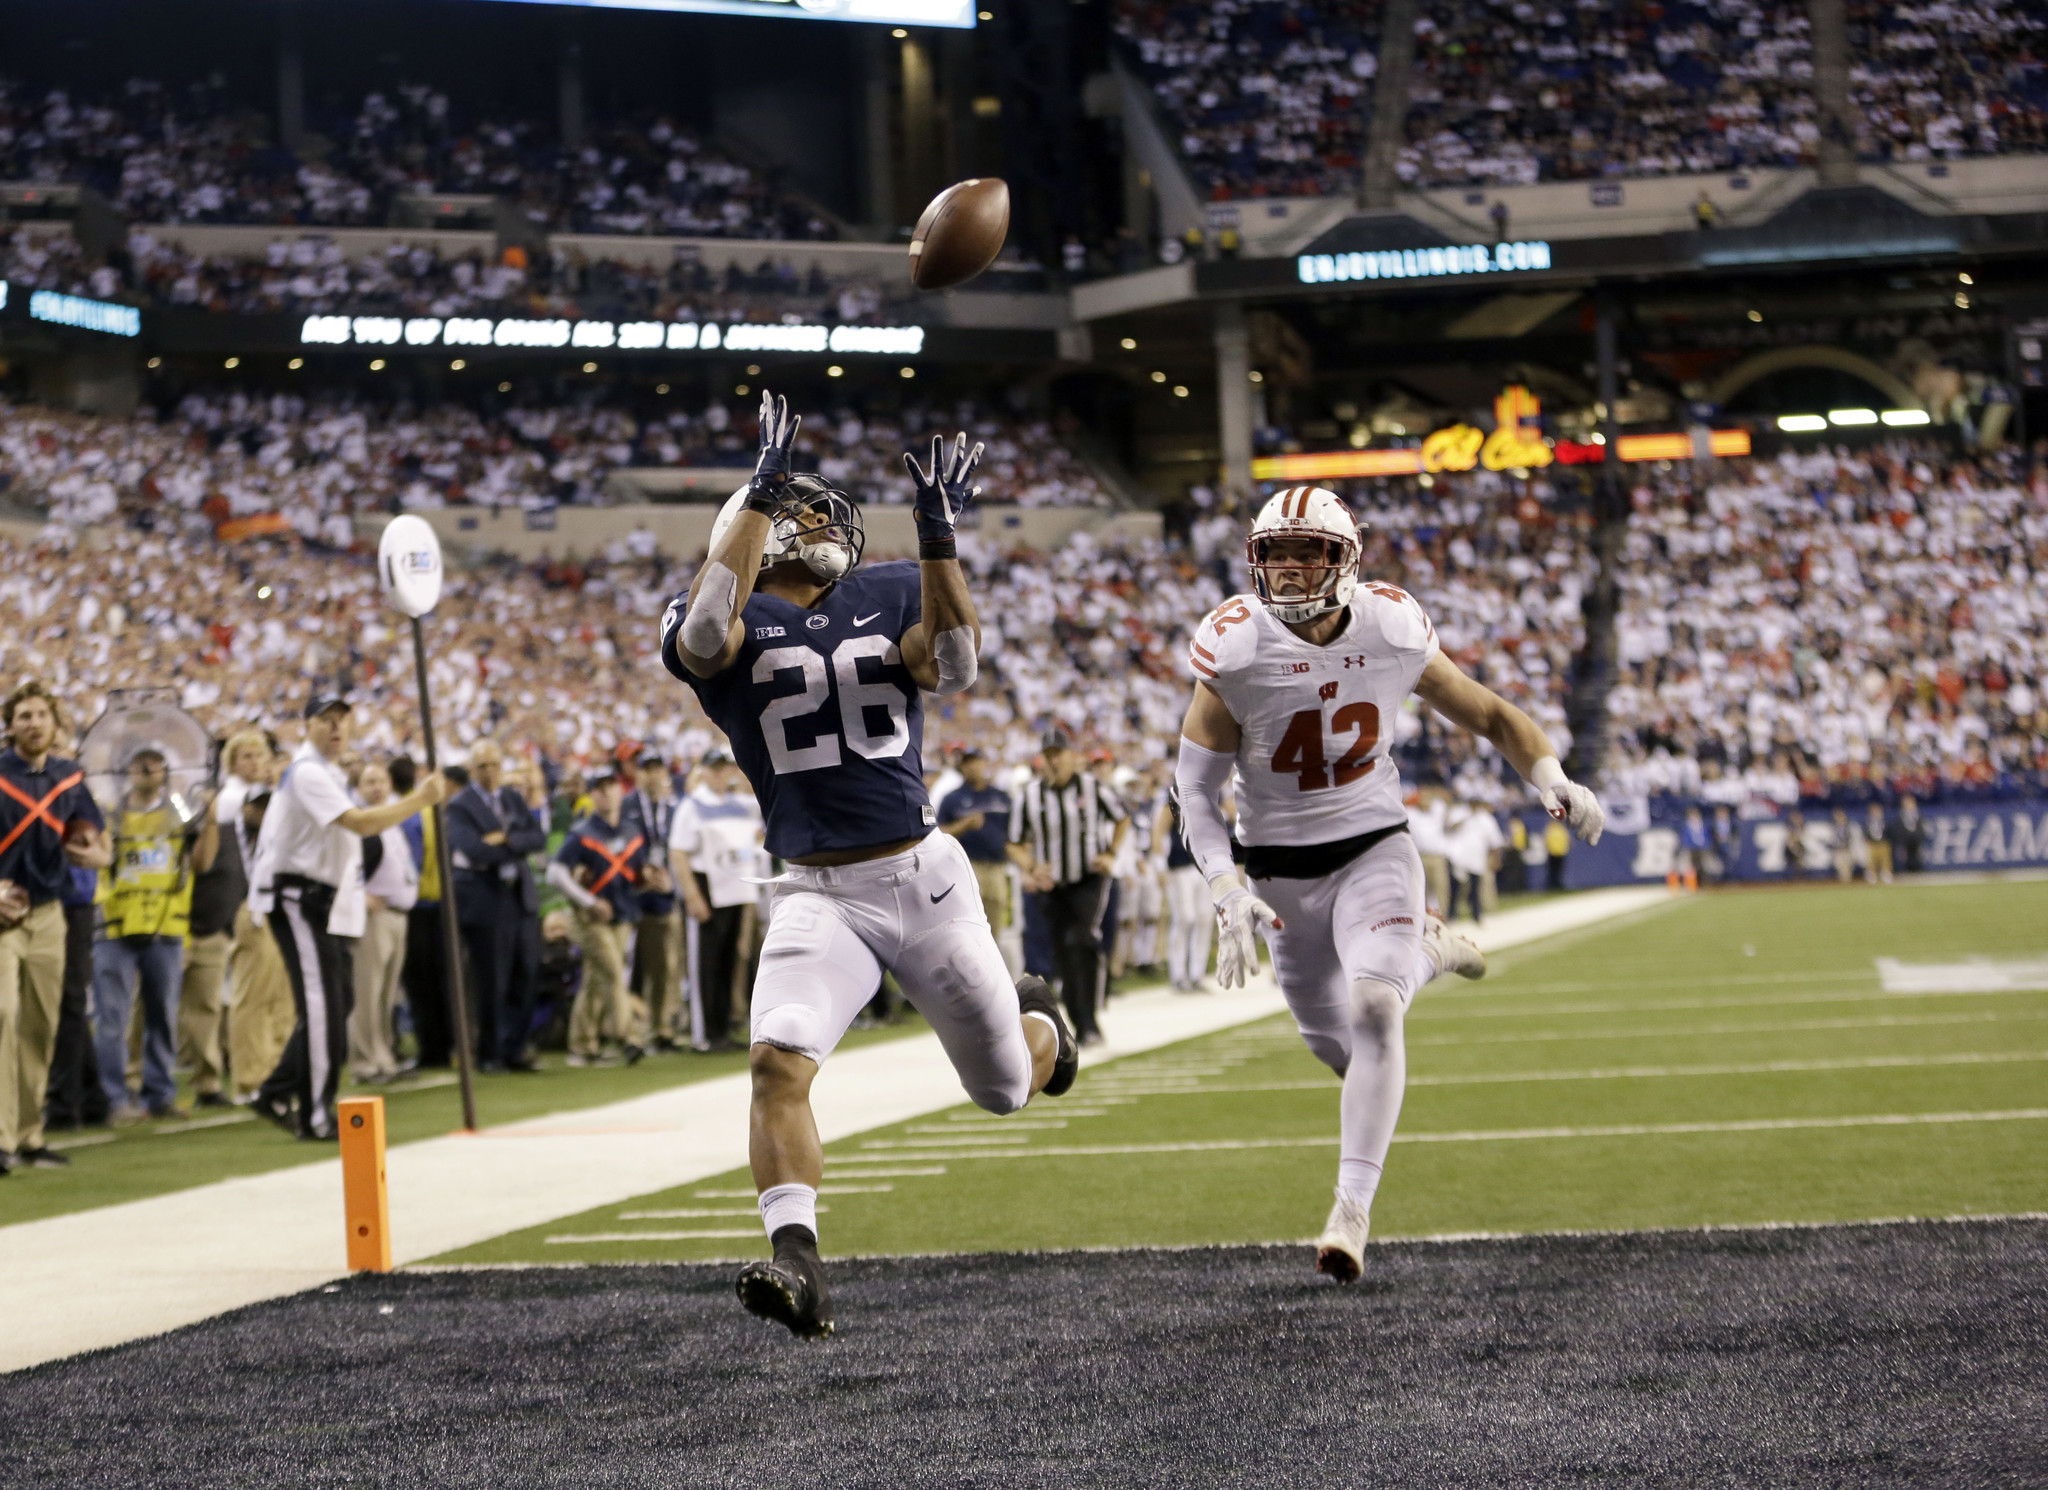 Penn State s Saquon Barkley  going national  this spring - The Morning Call bb2ab0628